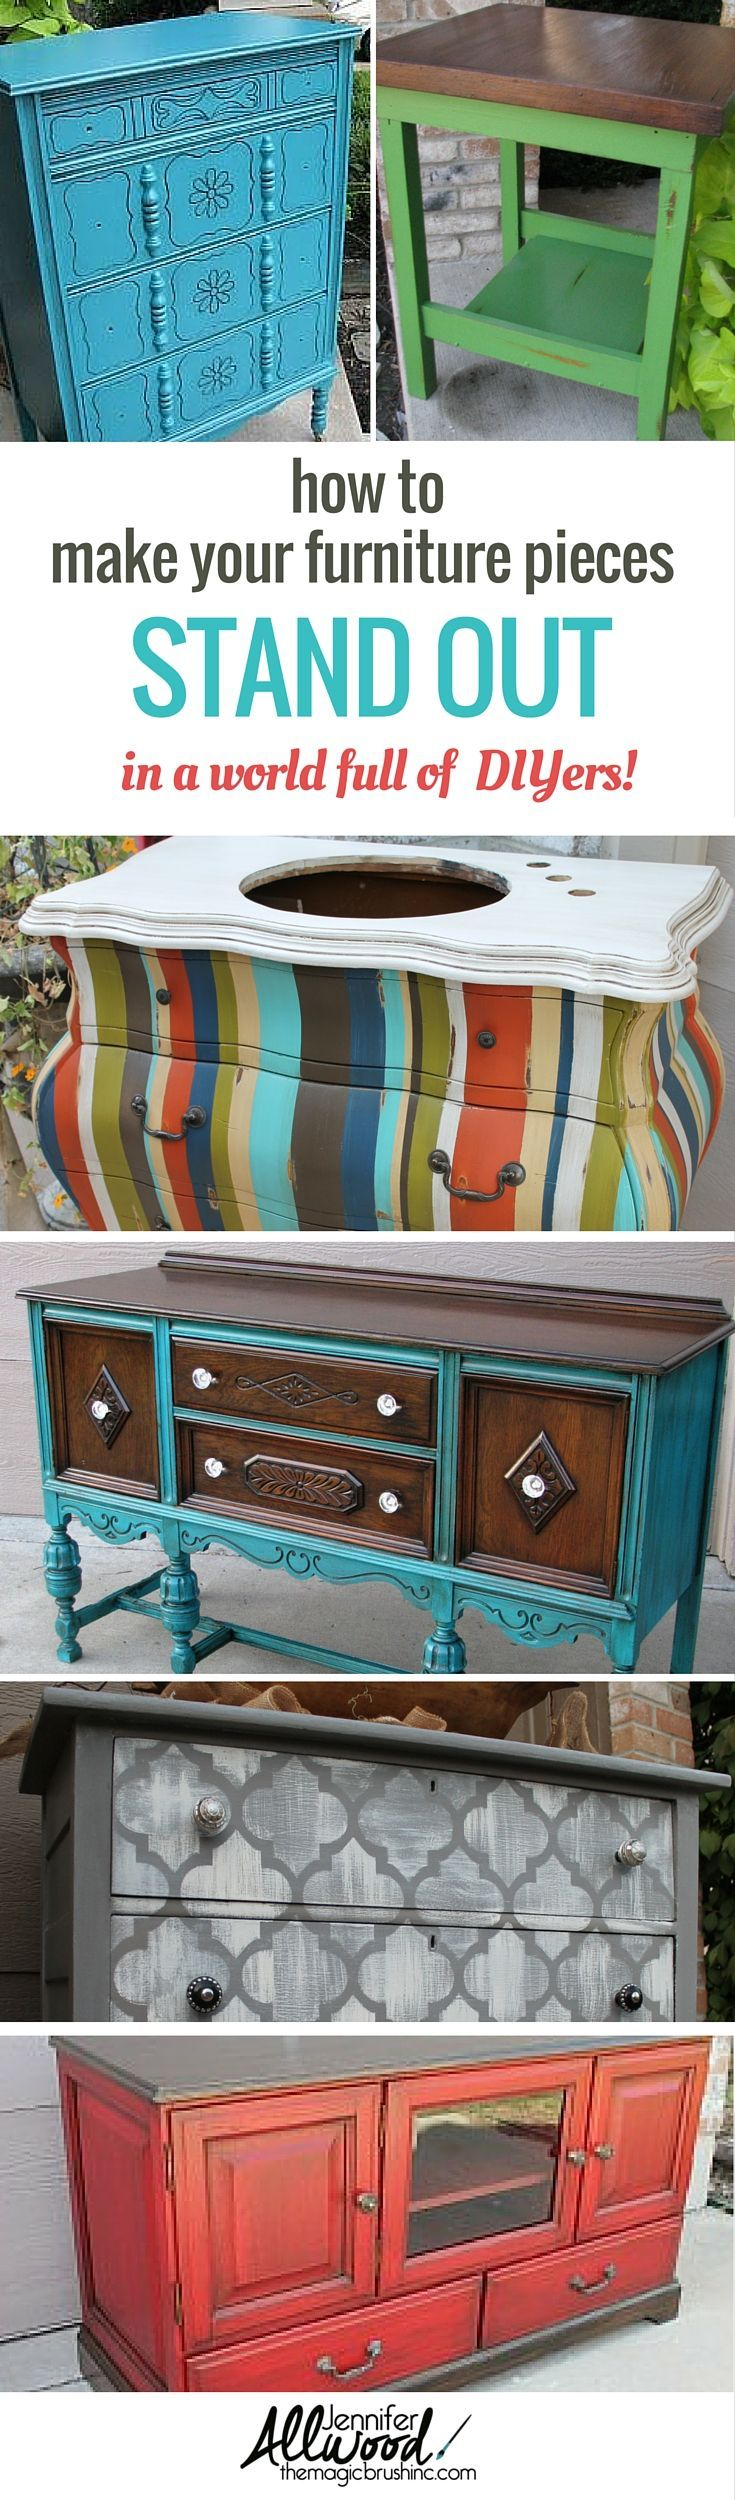 Best 25 Turquoise Painted Furniture Ideas On Pinterest Turquoise Furniture Distressed